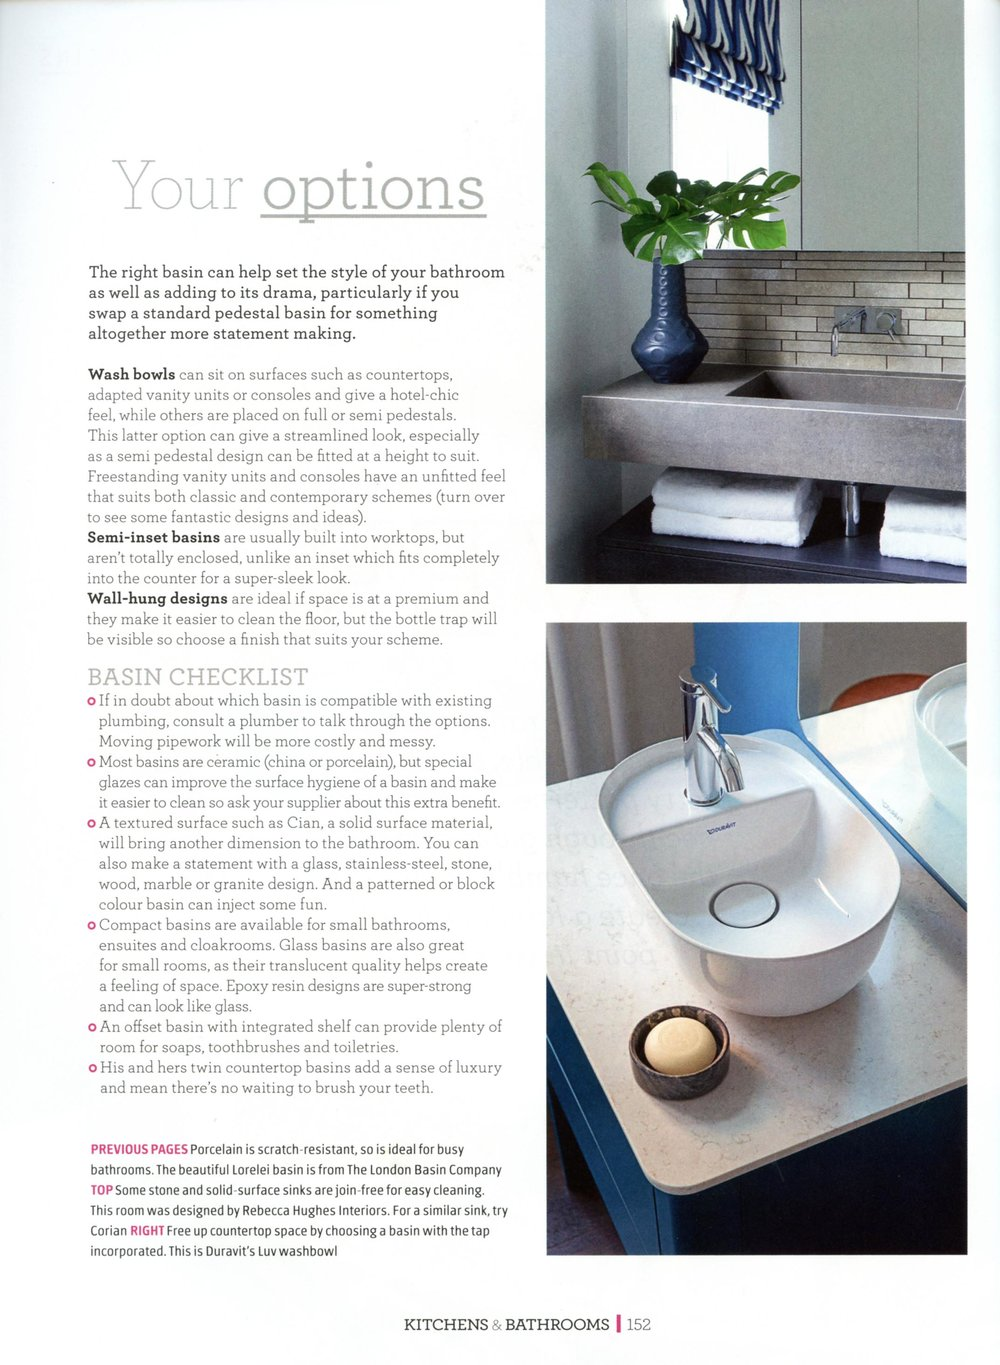 The Complete Guide to Kitchen & Bathrooms, August 2018, LBC 3.jpg